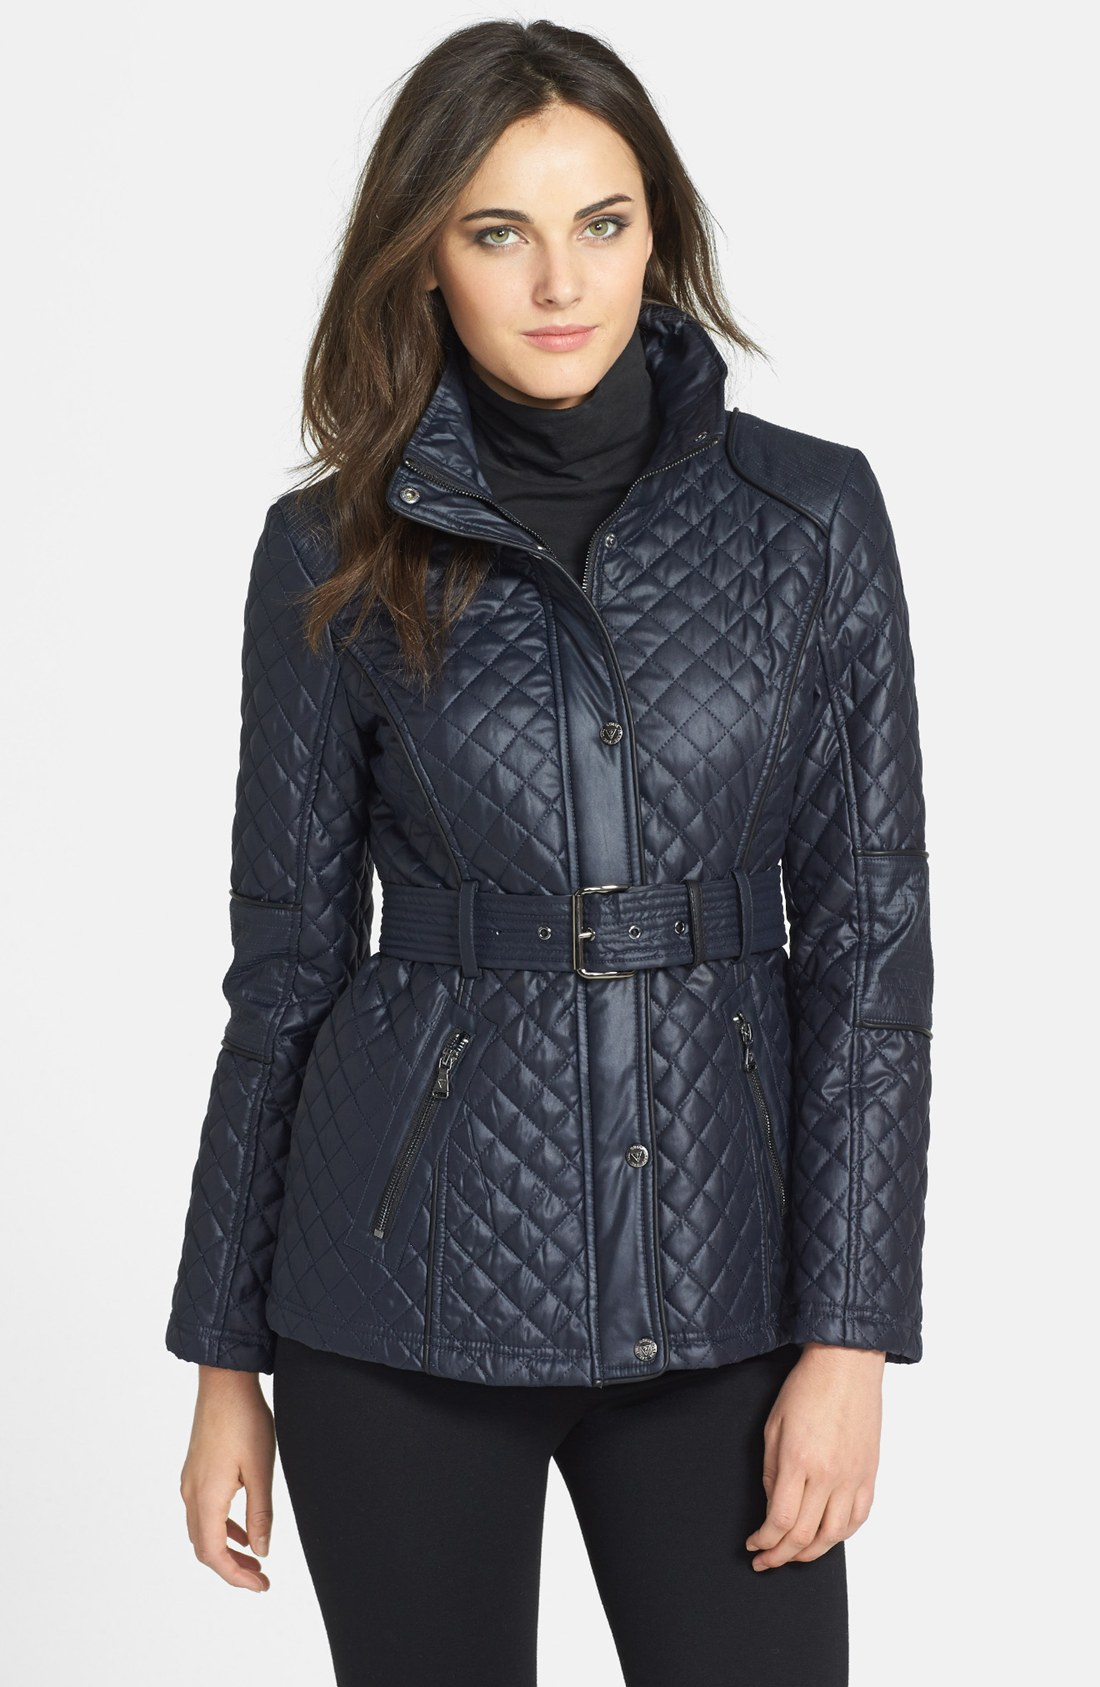 Shop the latest styles of Womens Belted Coats at Macys. Check out our designer collection of chic coats including peacoats, trench coats, puffer coats and more! Jou Jou Juniors' Faux-Fur-Lined Moto Jacket Cole Haan Quilted Belted Coat.